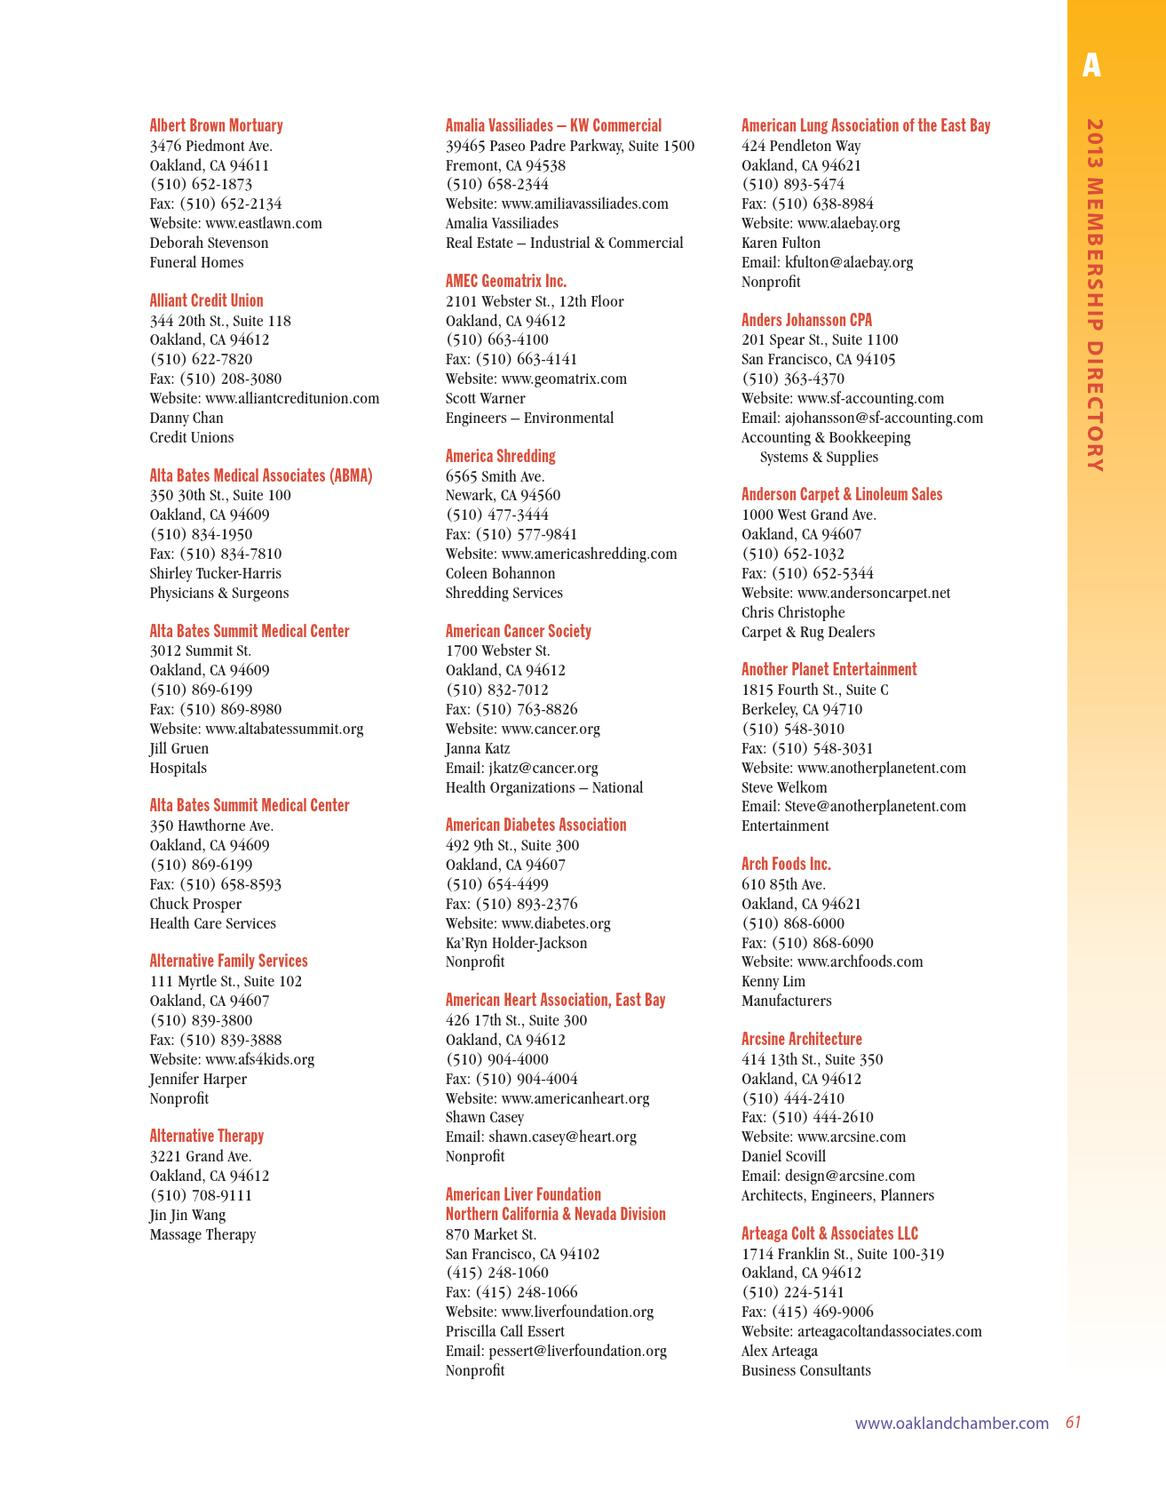 2013 Oakland Chamber of Commerce Membership Directory by